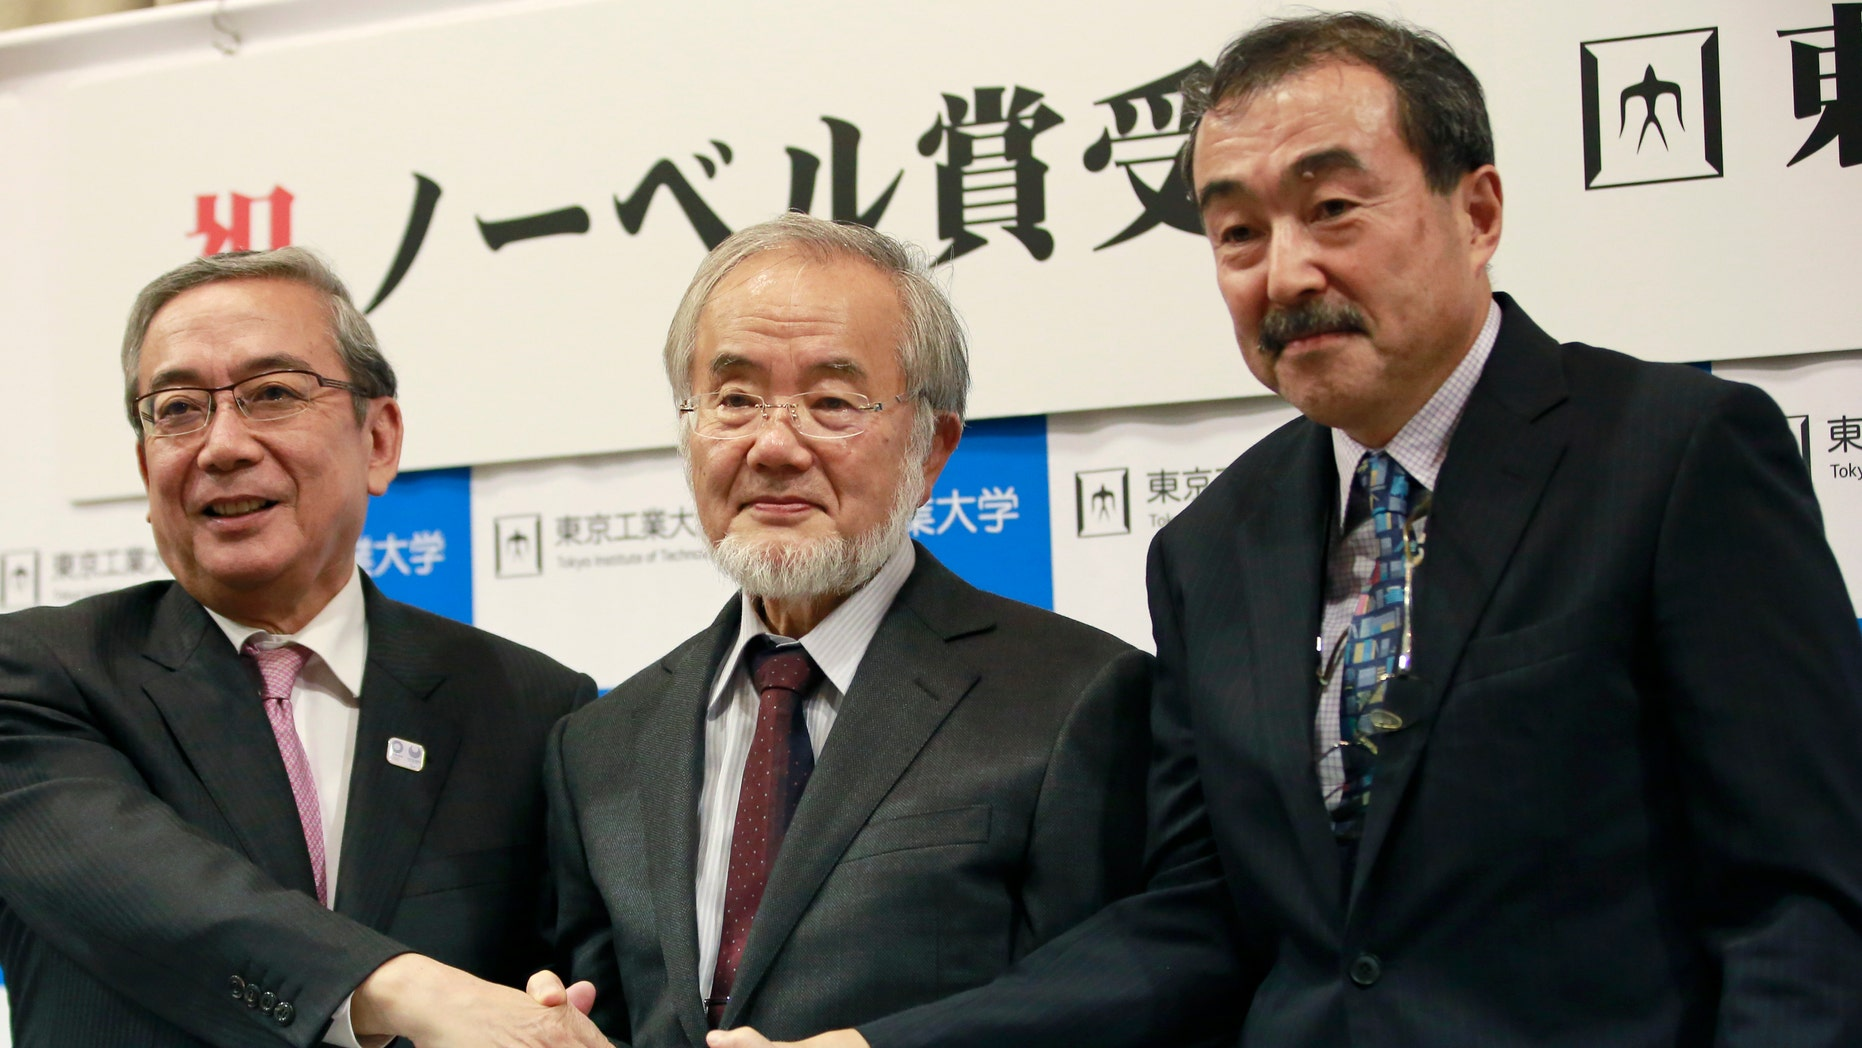 Nobel Prize winner Yoshinori Ohsumi, center, poses with Tokyo Institute of Technology President Yoshinao Mishima, left, and its Excutive Vice President Makoto Ando after a press conference at the Tokyo Institute of Technology in Tokyo Monday, Oct. 3, 2016. Ohsumi won the Nobel Prize in medicine on Monday for discoveries on how cells break down and recycle content, a garbage disposal system that scientists hope to harness in the fight against cancer, Alzheimer's and other diseases